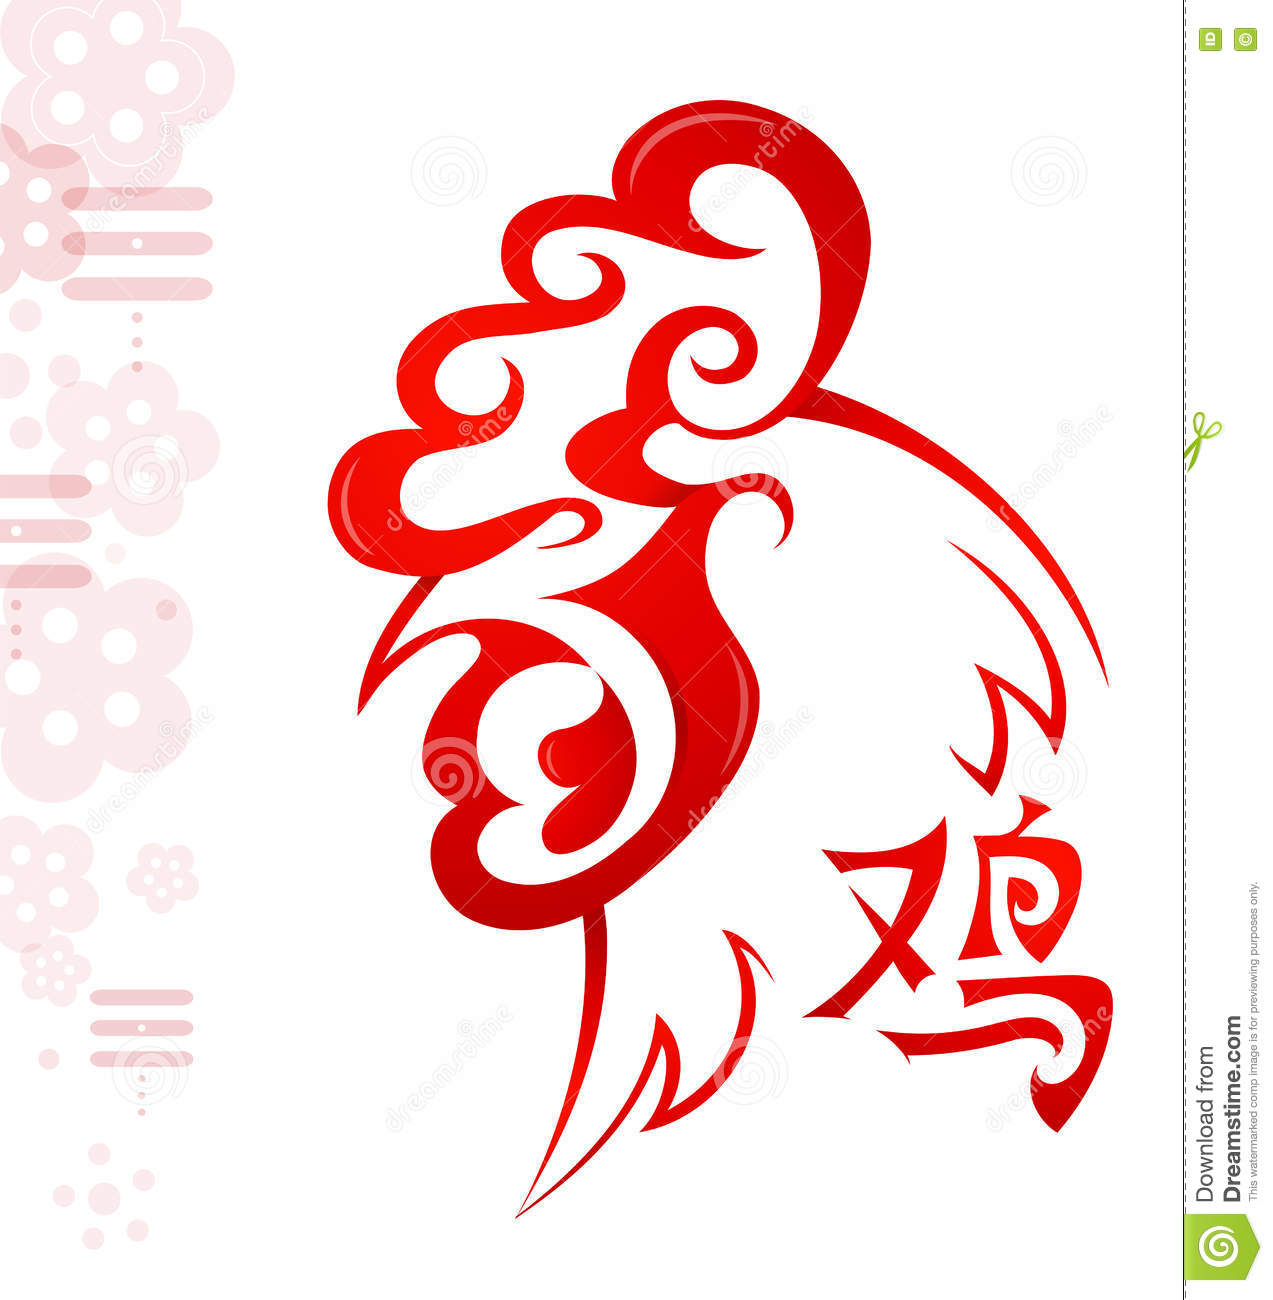 Chinese New Year 2017 Greeting Card Design Stock Vector - Image ...